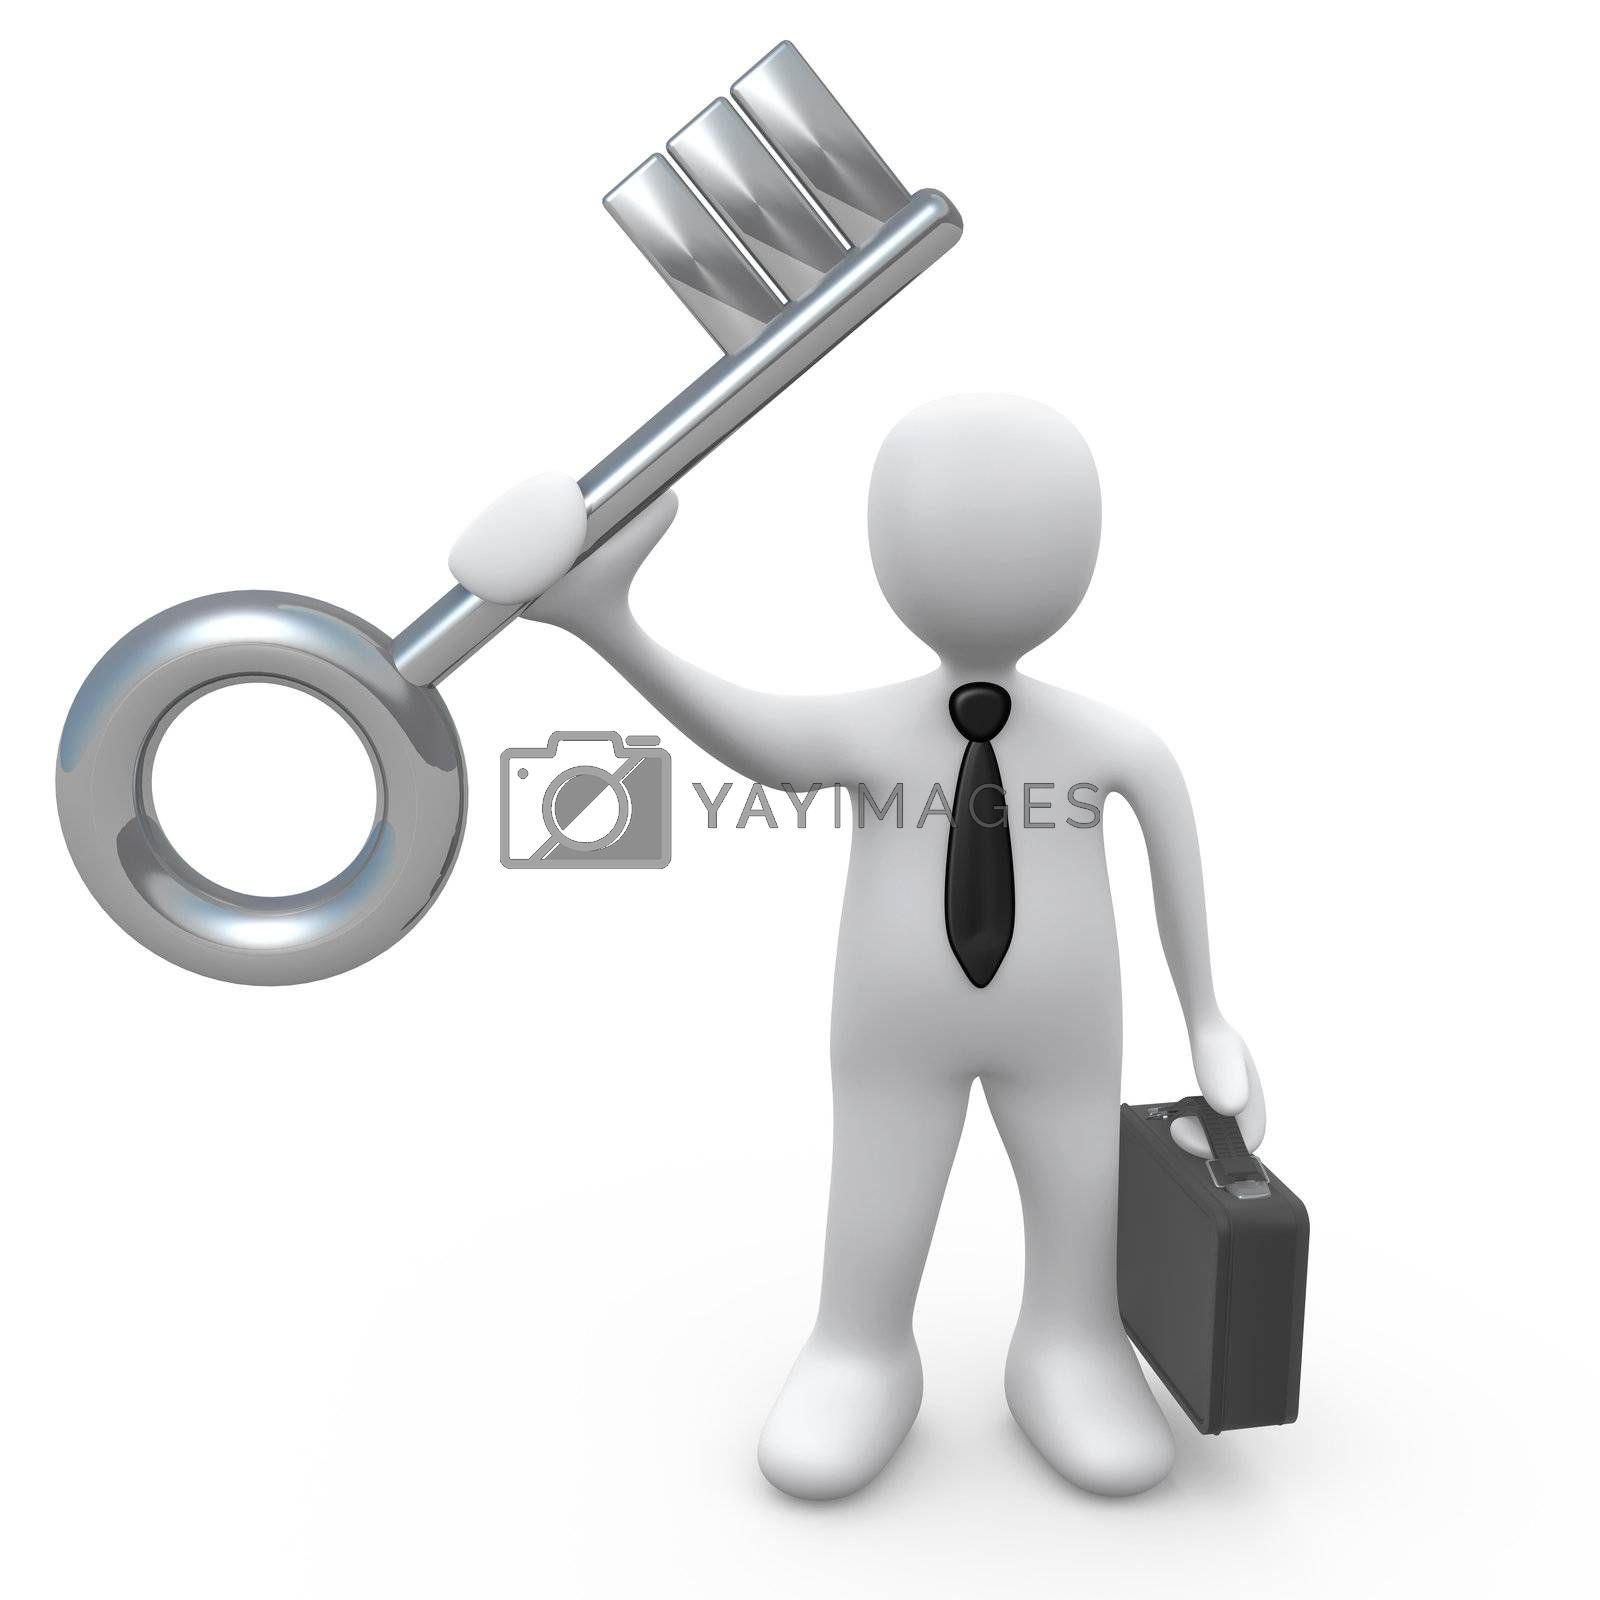 Business person holding a large key. Metaphor for solution or success.